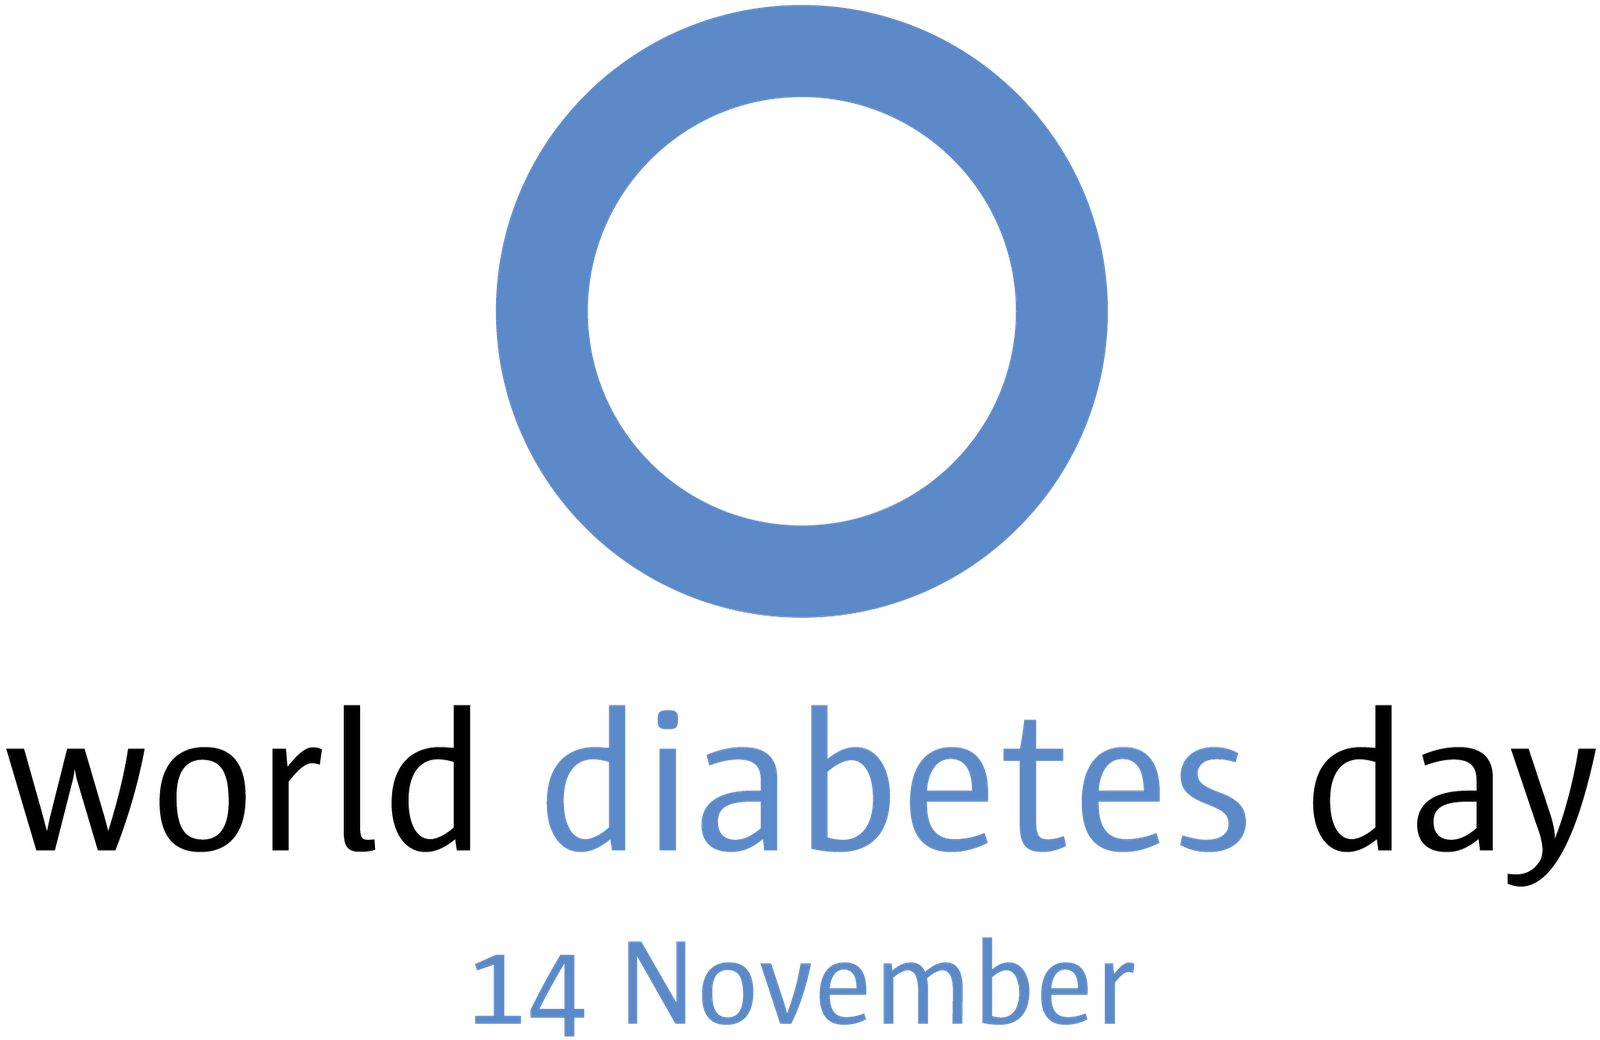 World diabetes day logo